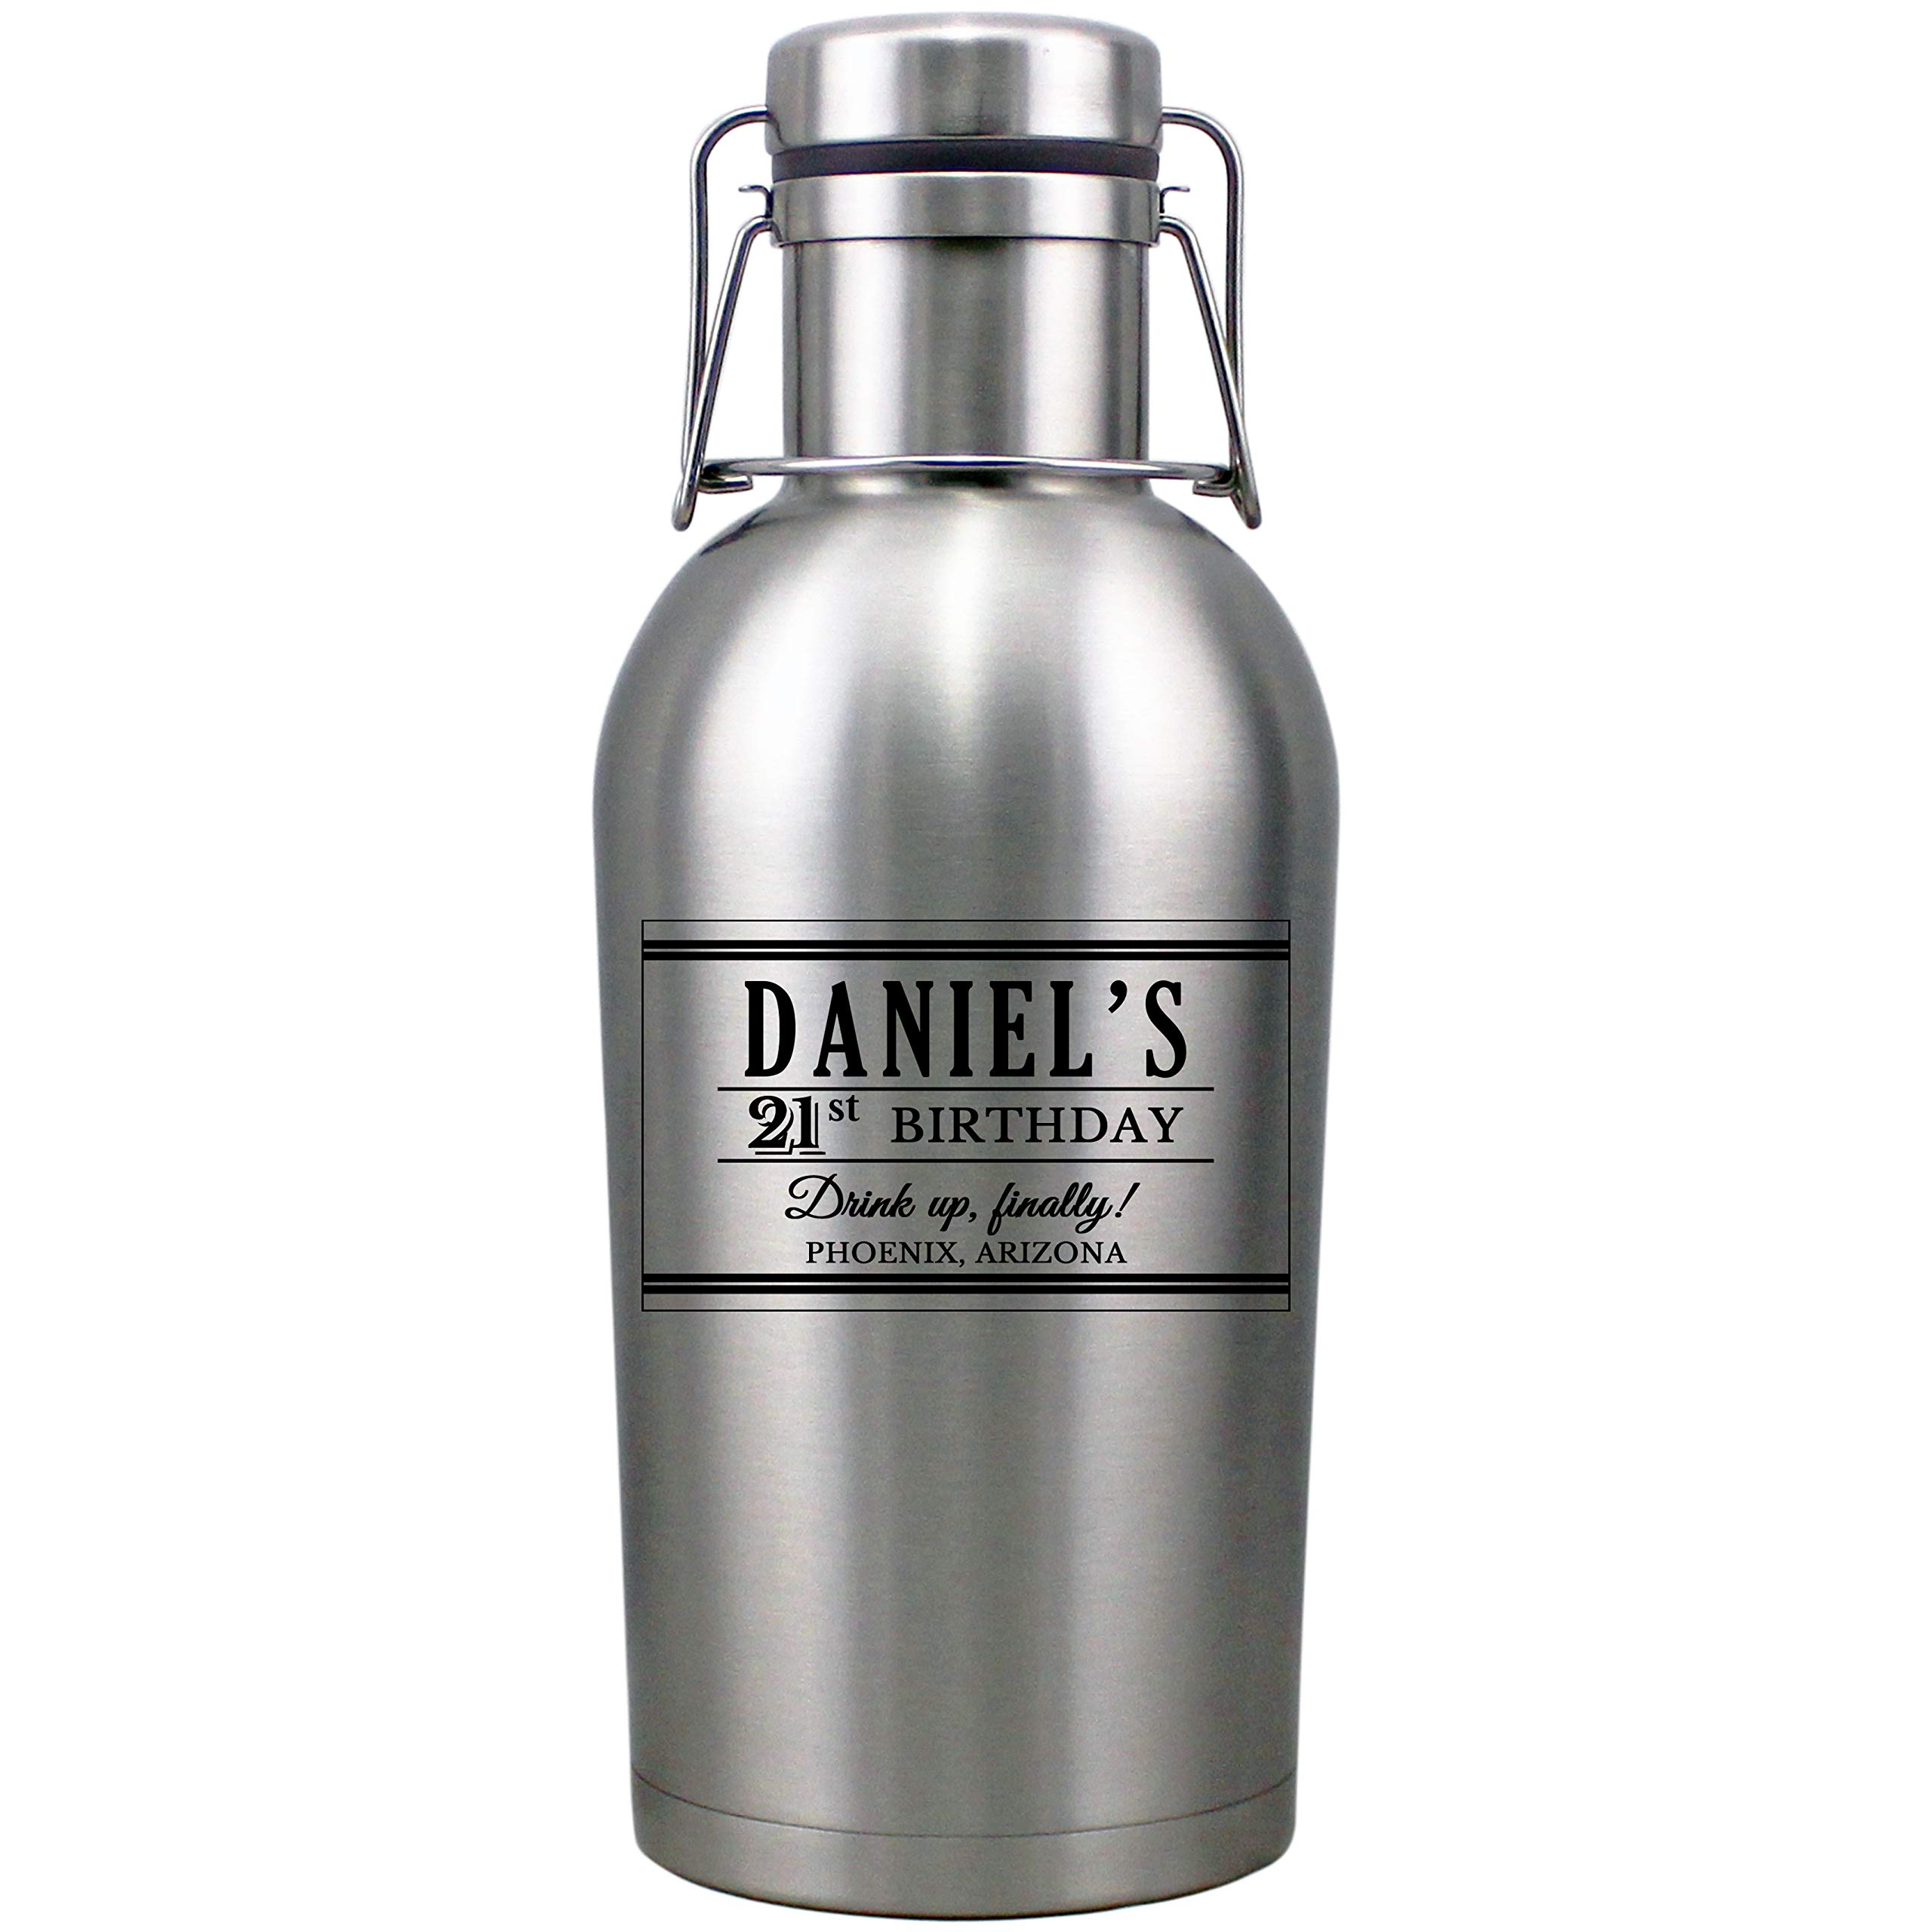 Personalized Etched 64oz Insulated Stainless Steel Growler for Birthday Gifts